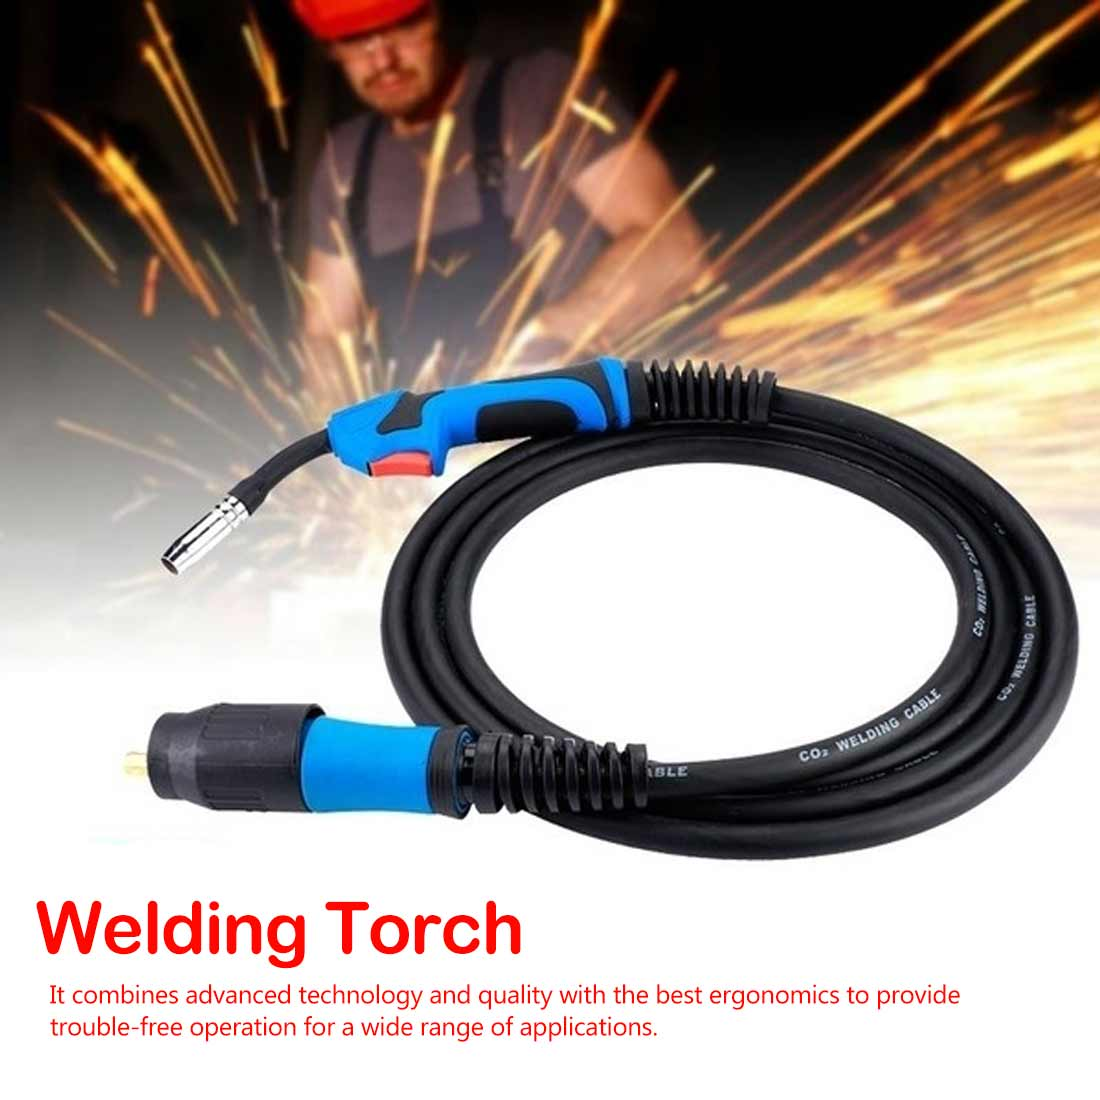 Mig Mag CO2 Welding Torch Air Cooled MB 1PCS 15AK 14AK Swan Neck Contact Tip Holder Gas Nozzle Solenoid Valve